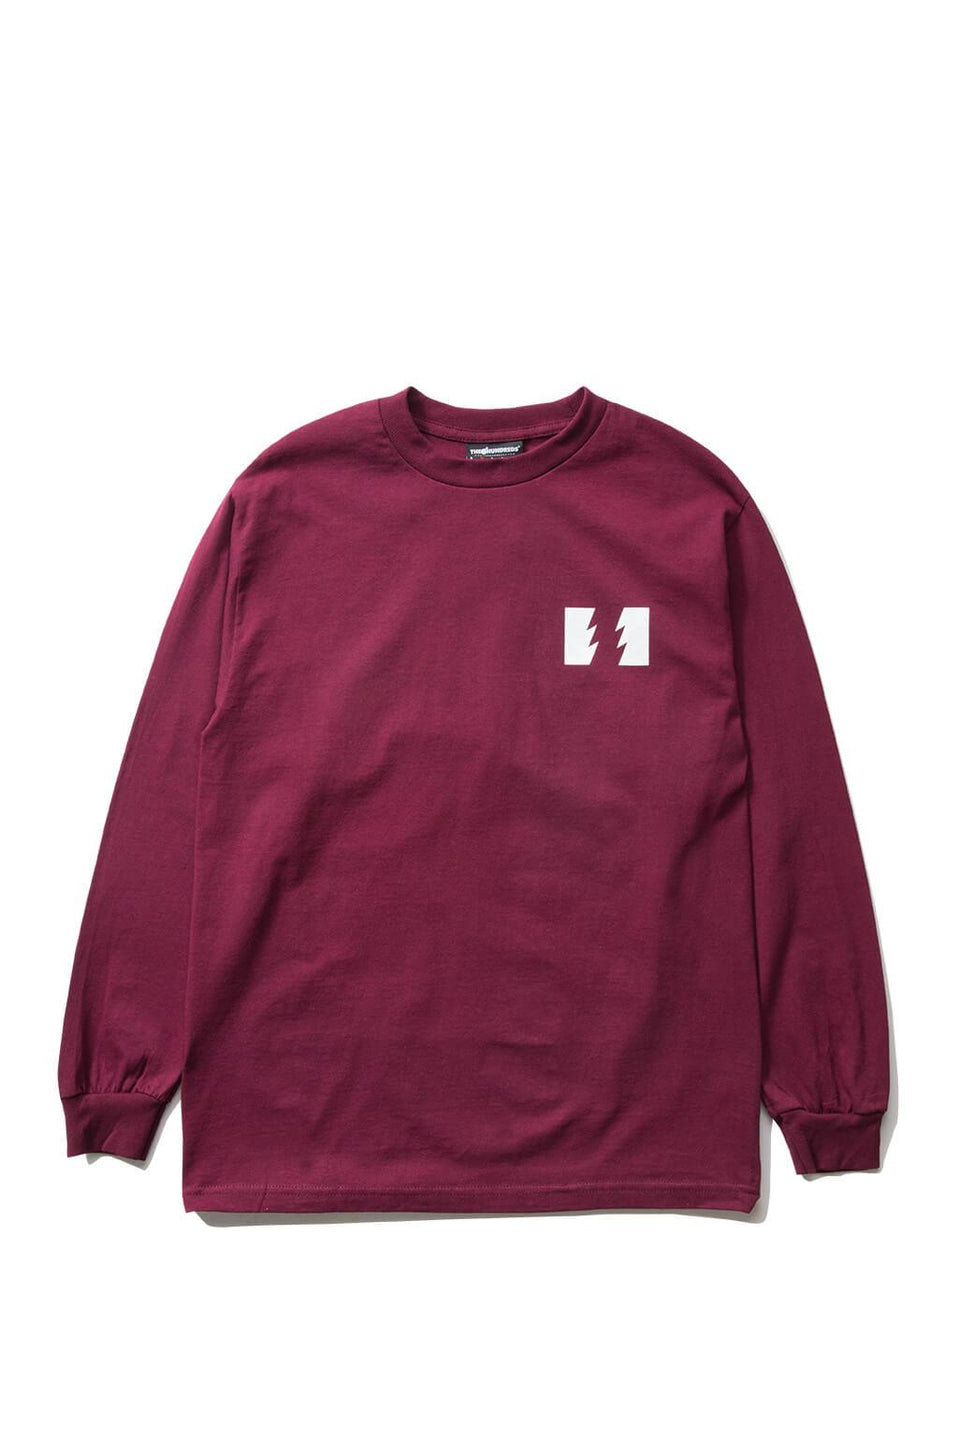 The Hundreds Forever Wildfire Longsleeve Shirt Burgundy Front